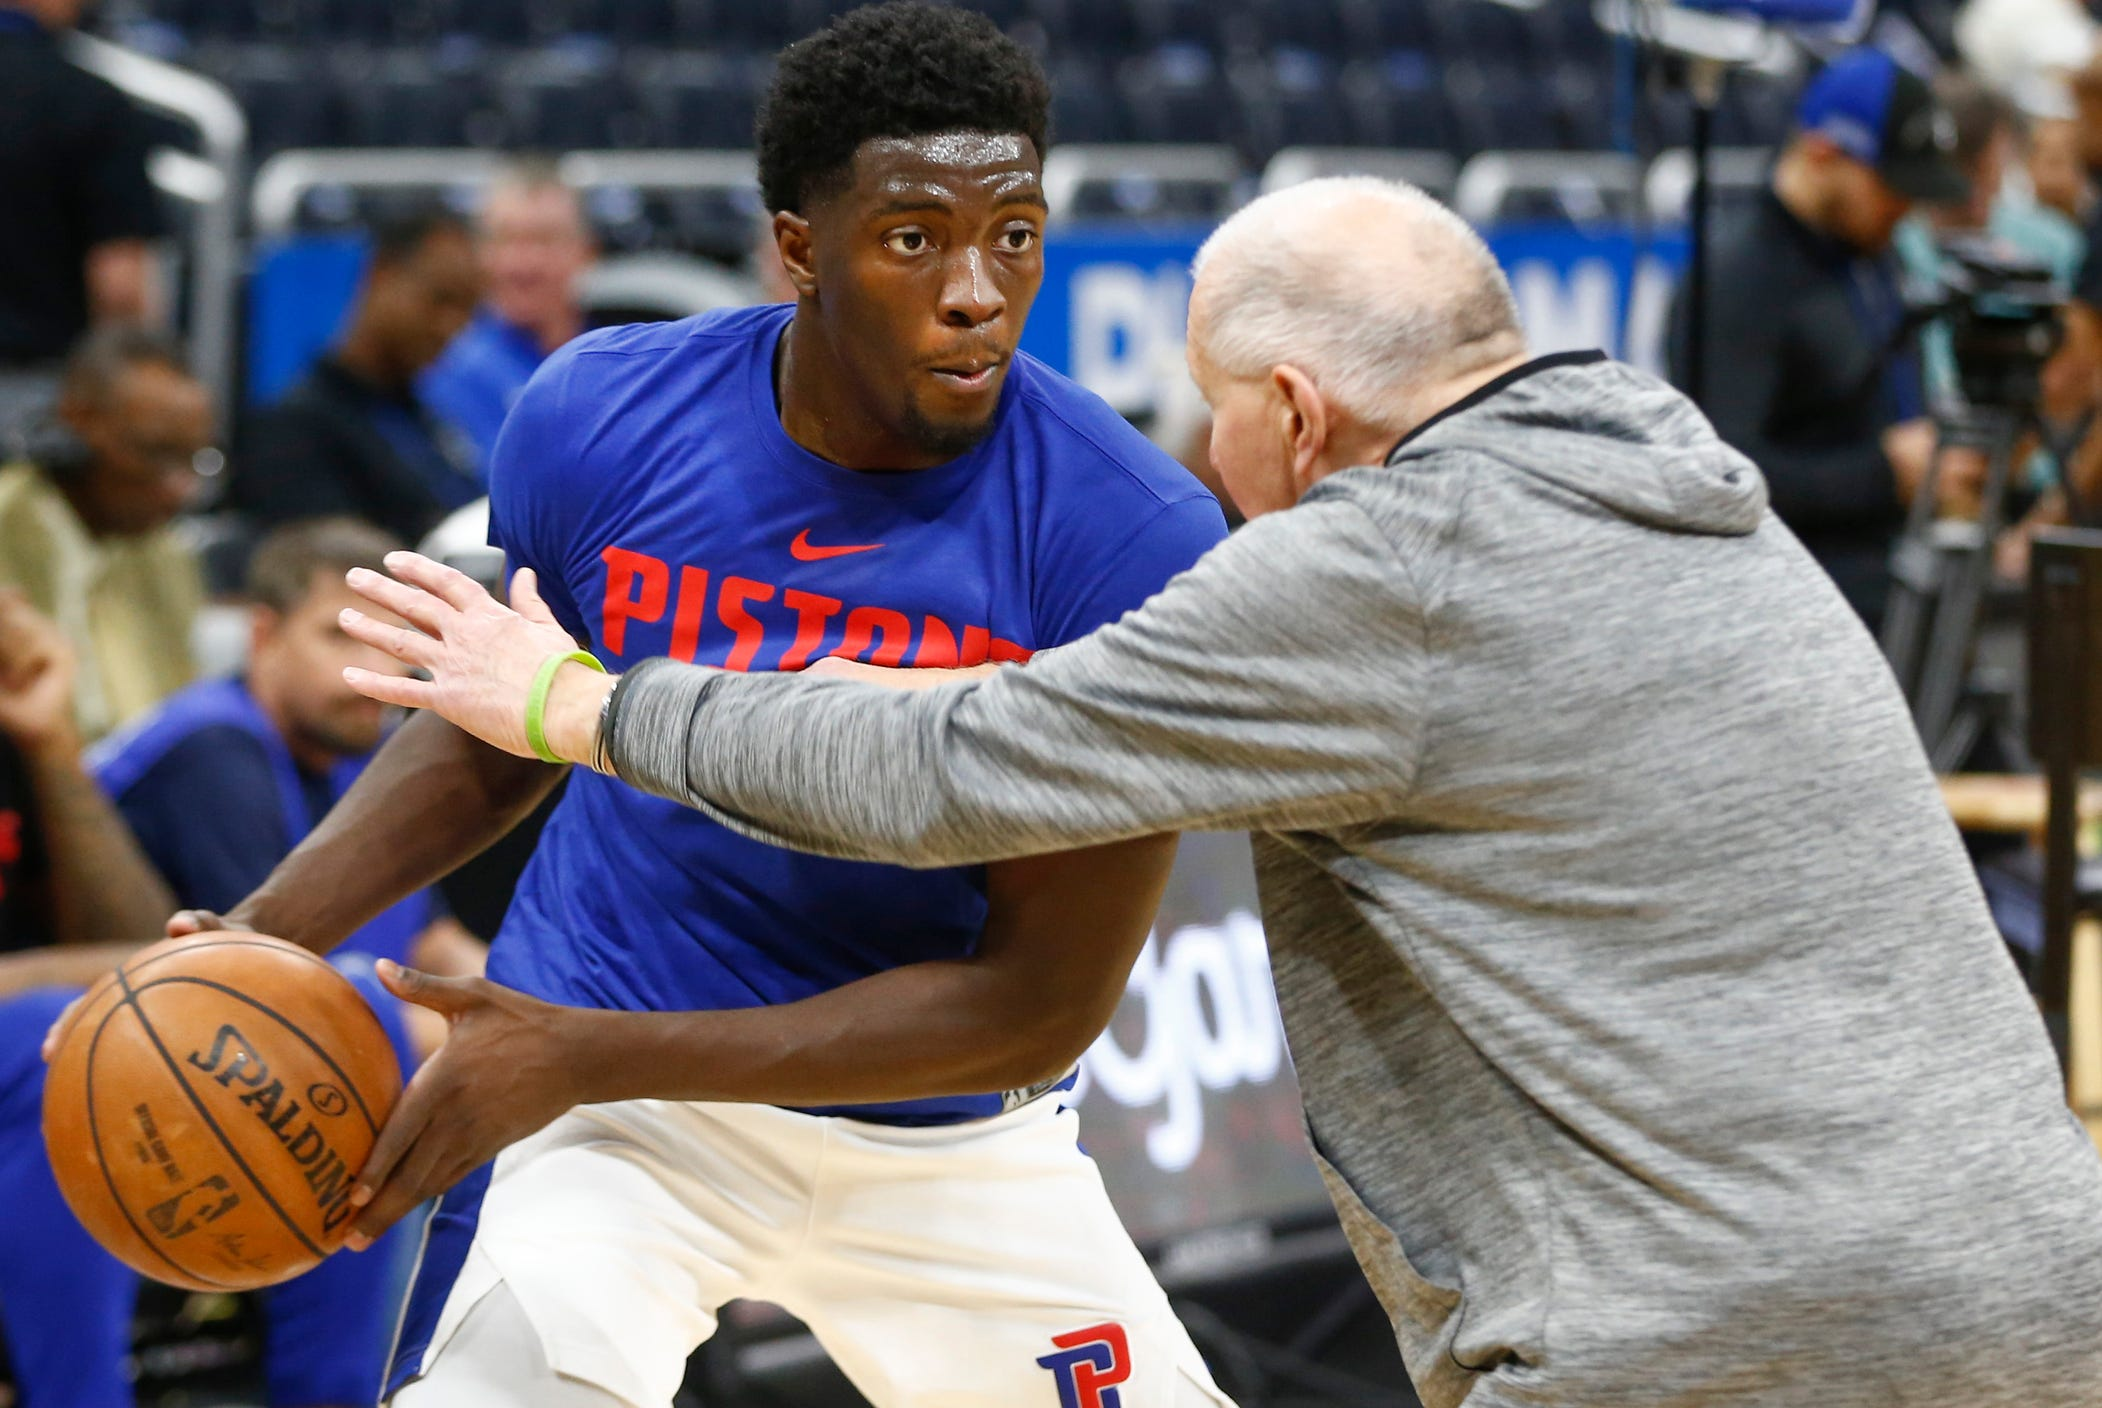 Pistons guard Khyri Thomas works out with an assistant before the game against the Magic on Dec. 30, 2018, in Orlando, Fla.